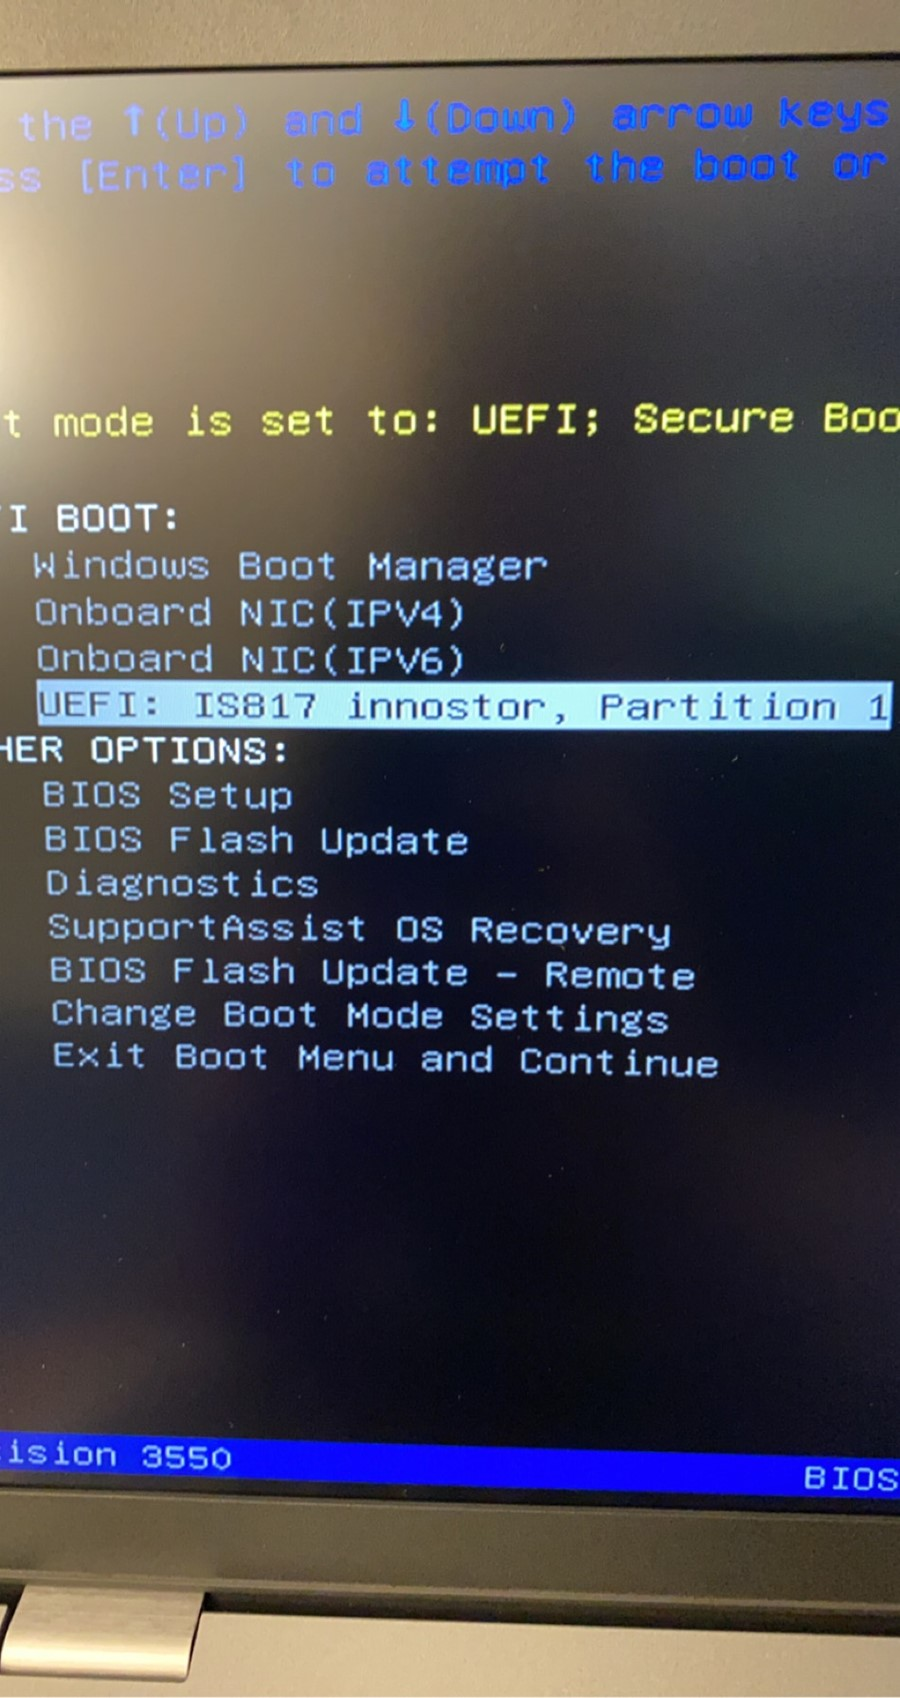 BIOS screen showing the appropriate USB boot option